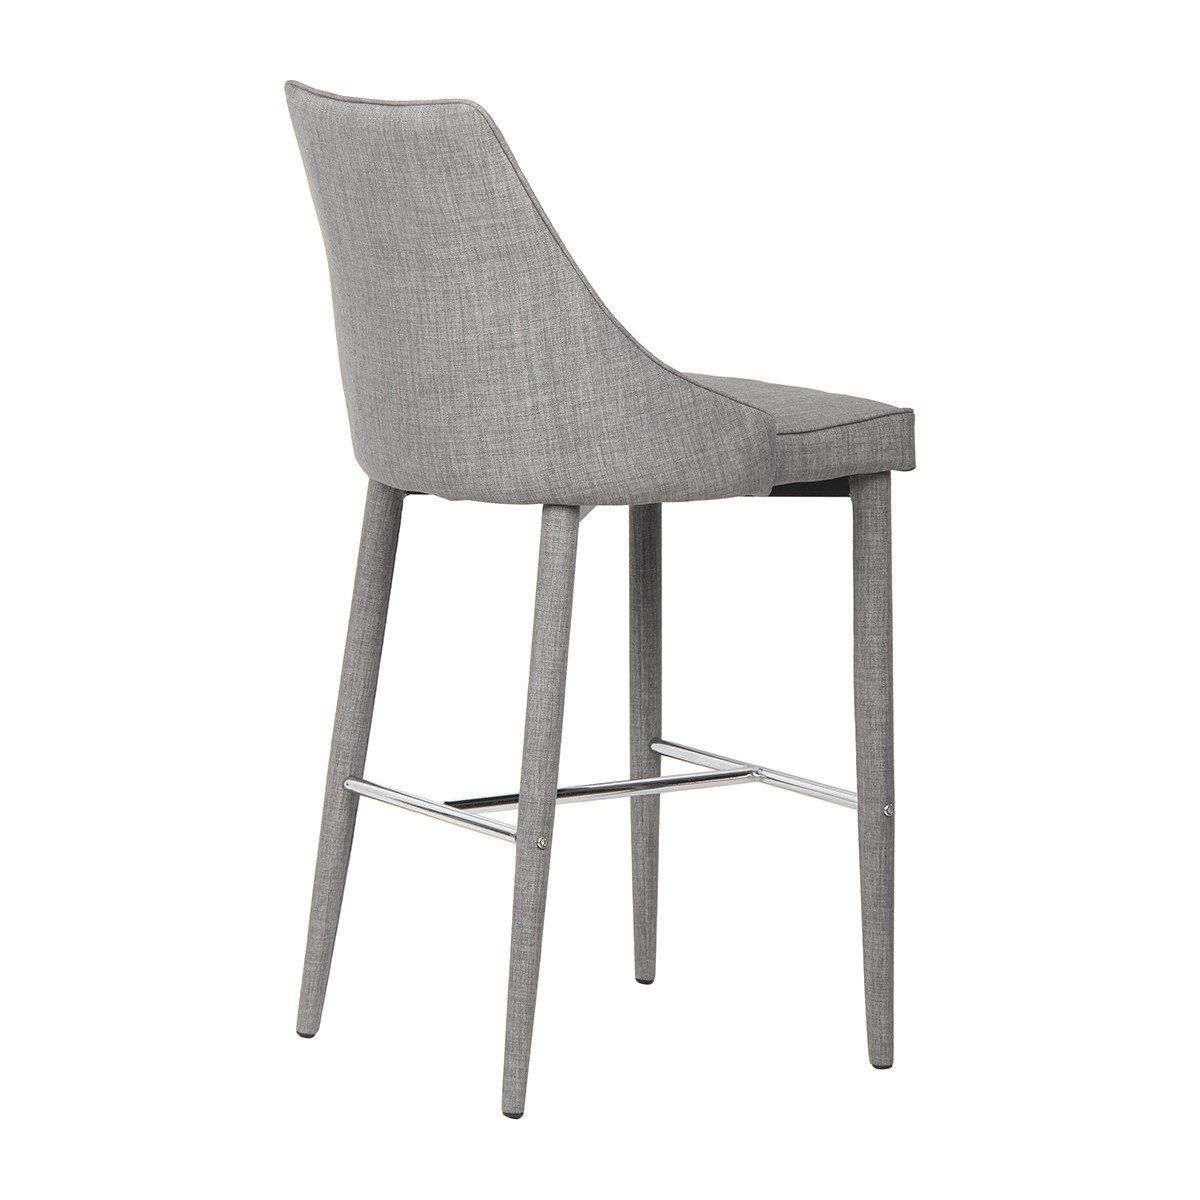 Buy Modern Bar Stools Online Or Visit Our Showrooms To Get Inspired With The Latest Bar Stools From Life Interiors Charlie Bar Stoo Bar Stools Stool